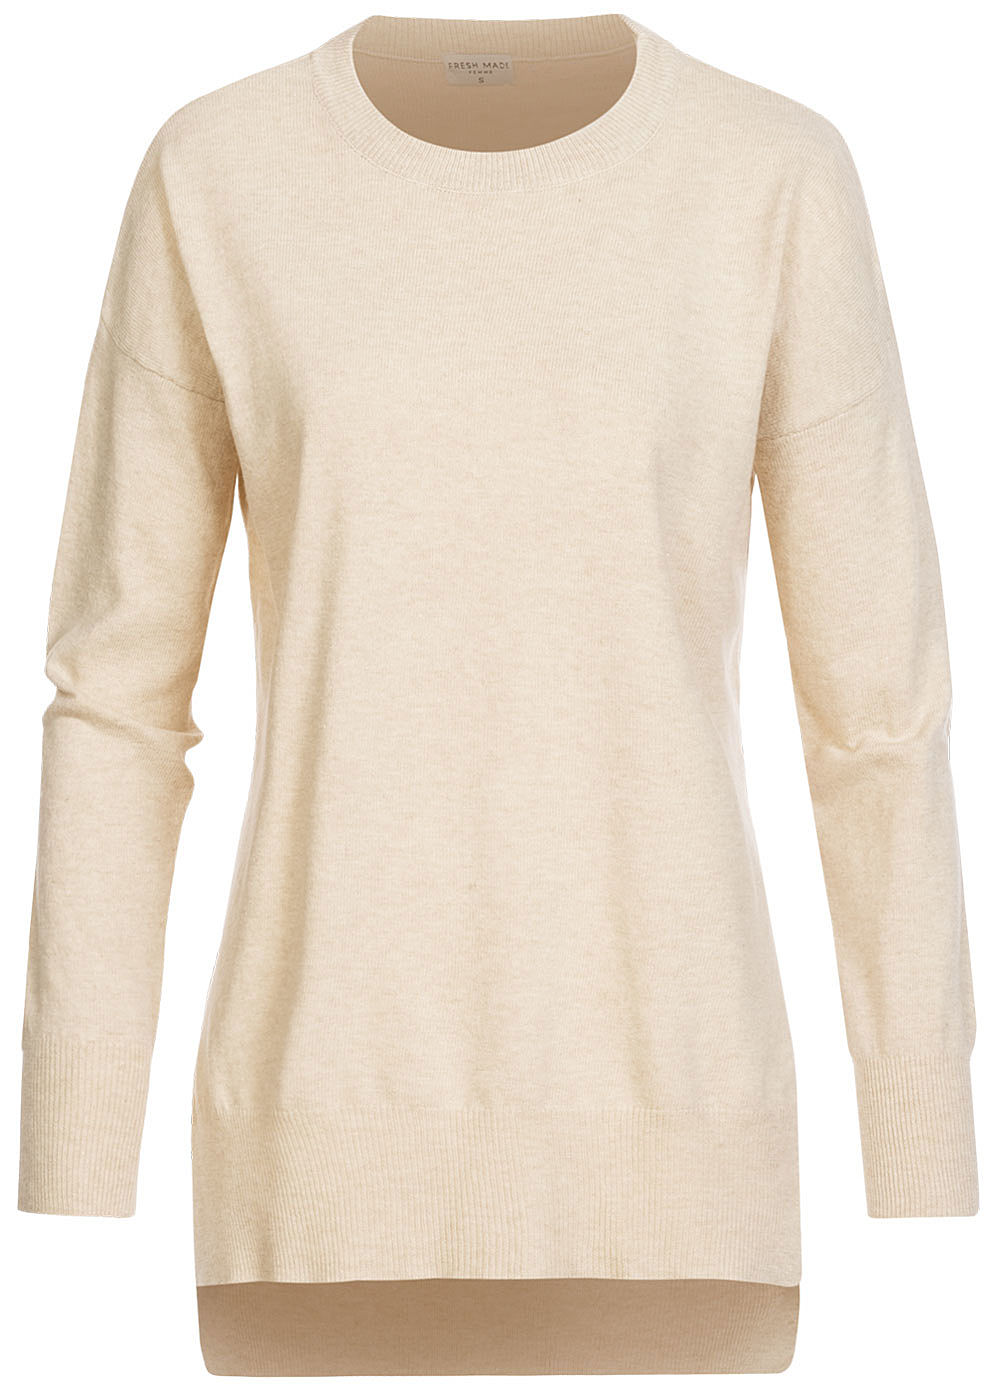 Fresh Made Damen Oversized Melange Sweater Schlitze seitl nude beige melange - Art.-Nr.: 19115267